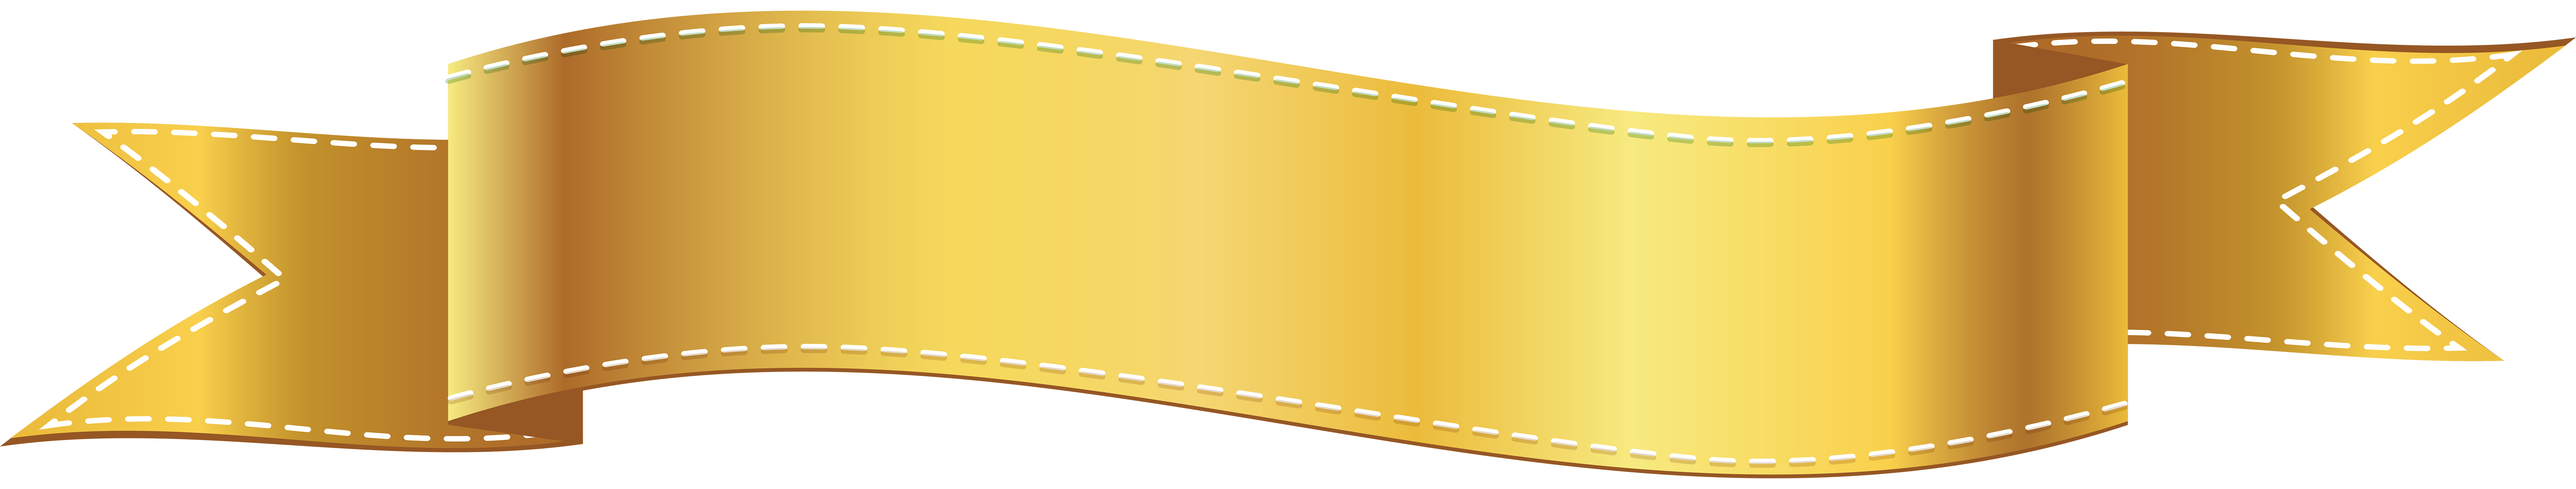 Gold banner ribbon png. Free golden cliparts download